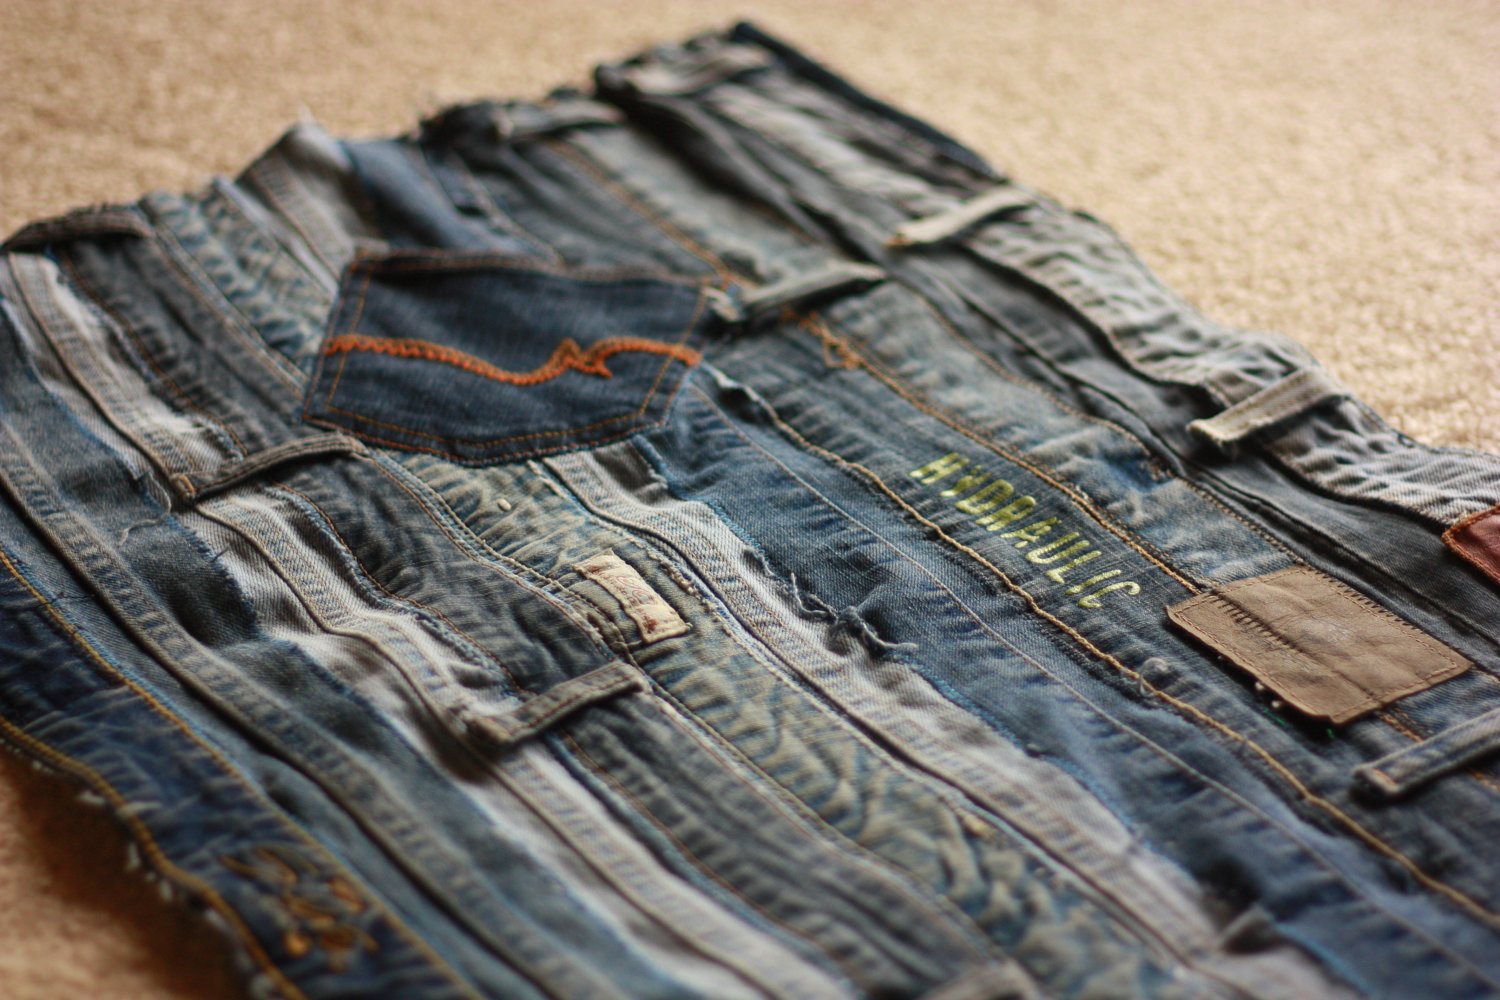 Denim rugs 221 upcycling ideas that will blow your mind for Jeans upcycling ideas